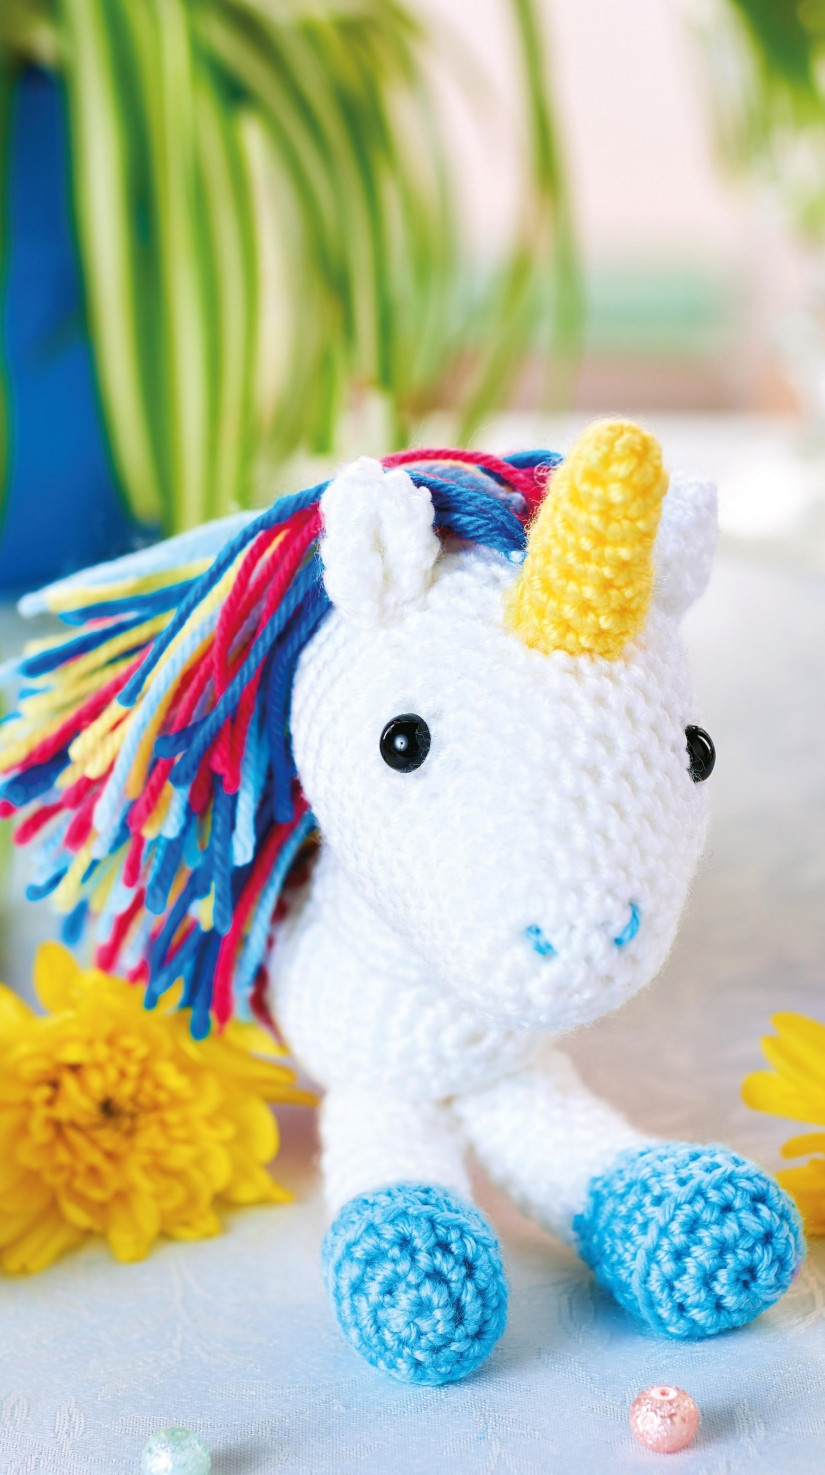 Unicorn Crochet Pattern Awesome Free Crochet Pattern for Unicorn Dancox for Of Luxury 44 Pictures Unicorn Crochet Pattern